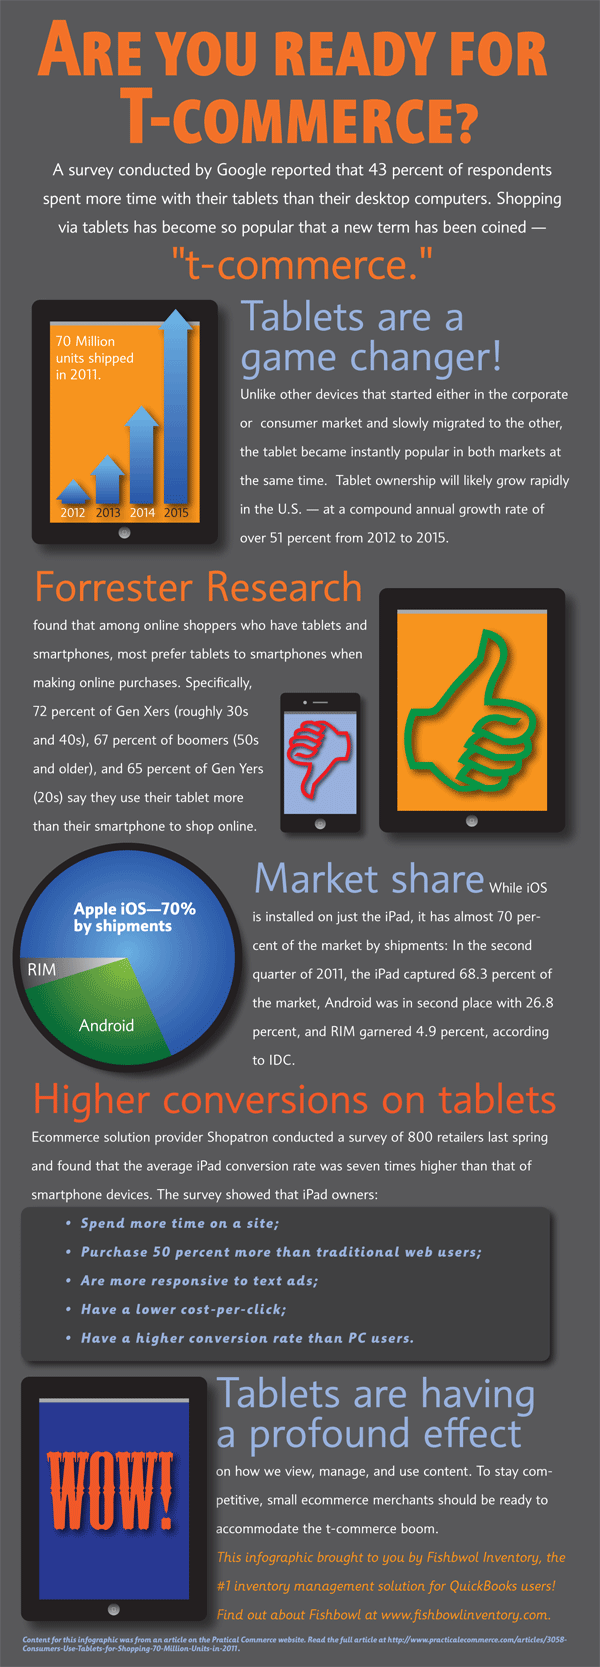 Tablets are a game changer, they are resulting in higher conversions than traditional e-commerce avenues.